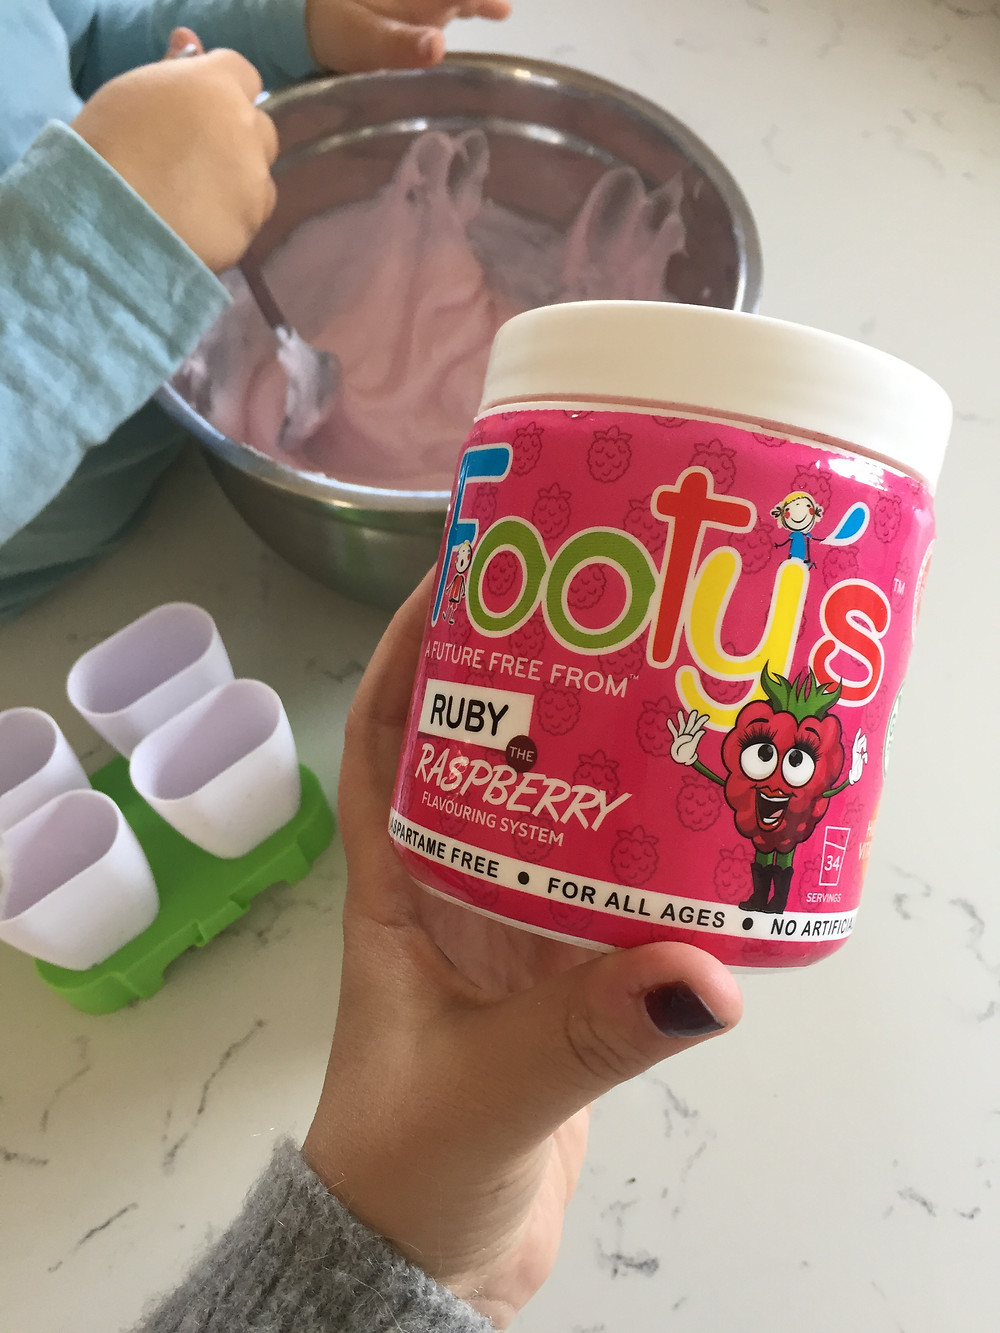 Footy's Raspberry flavoring added to yogurt for icelollies. Children cooking